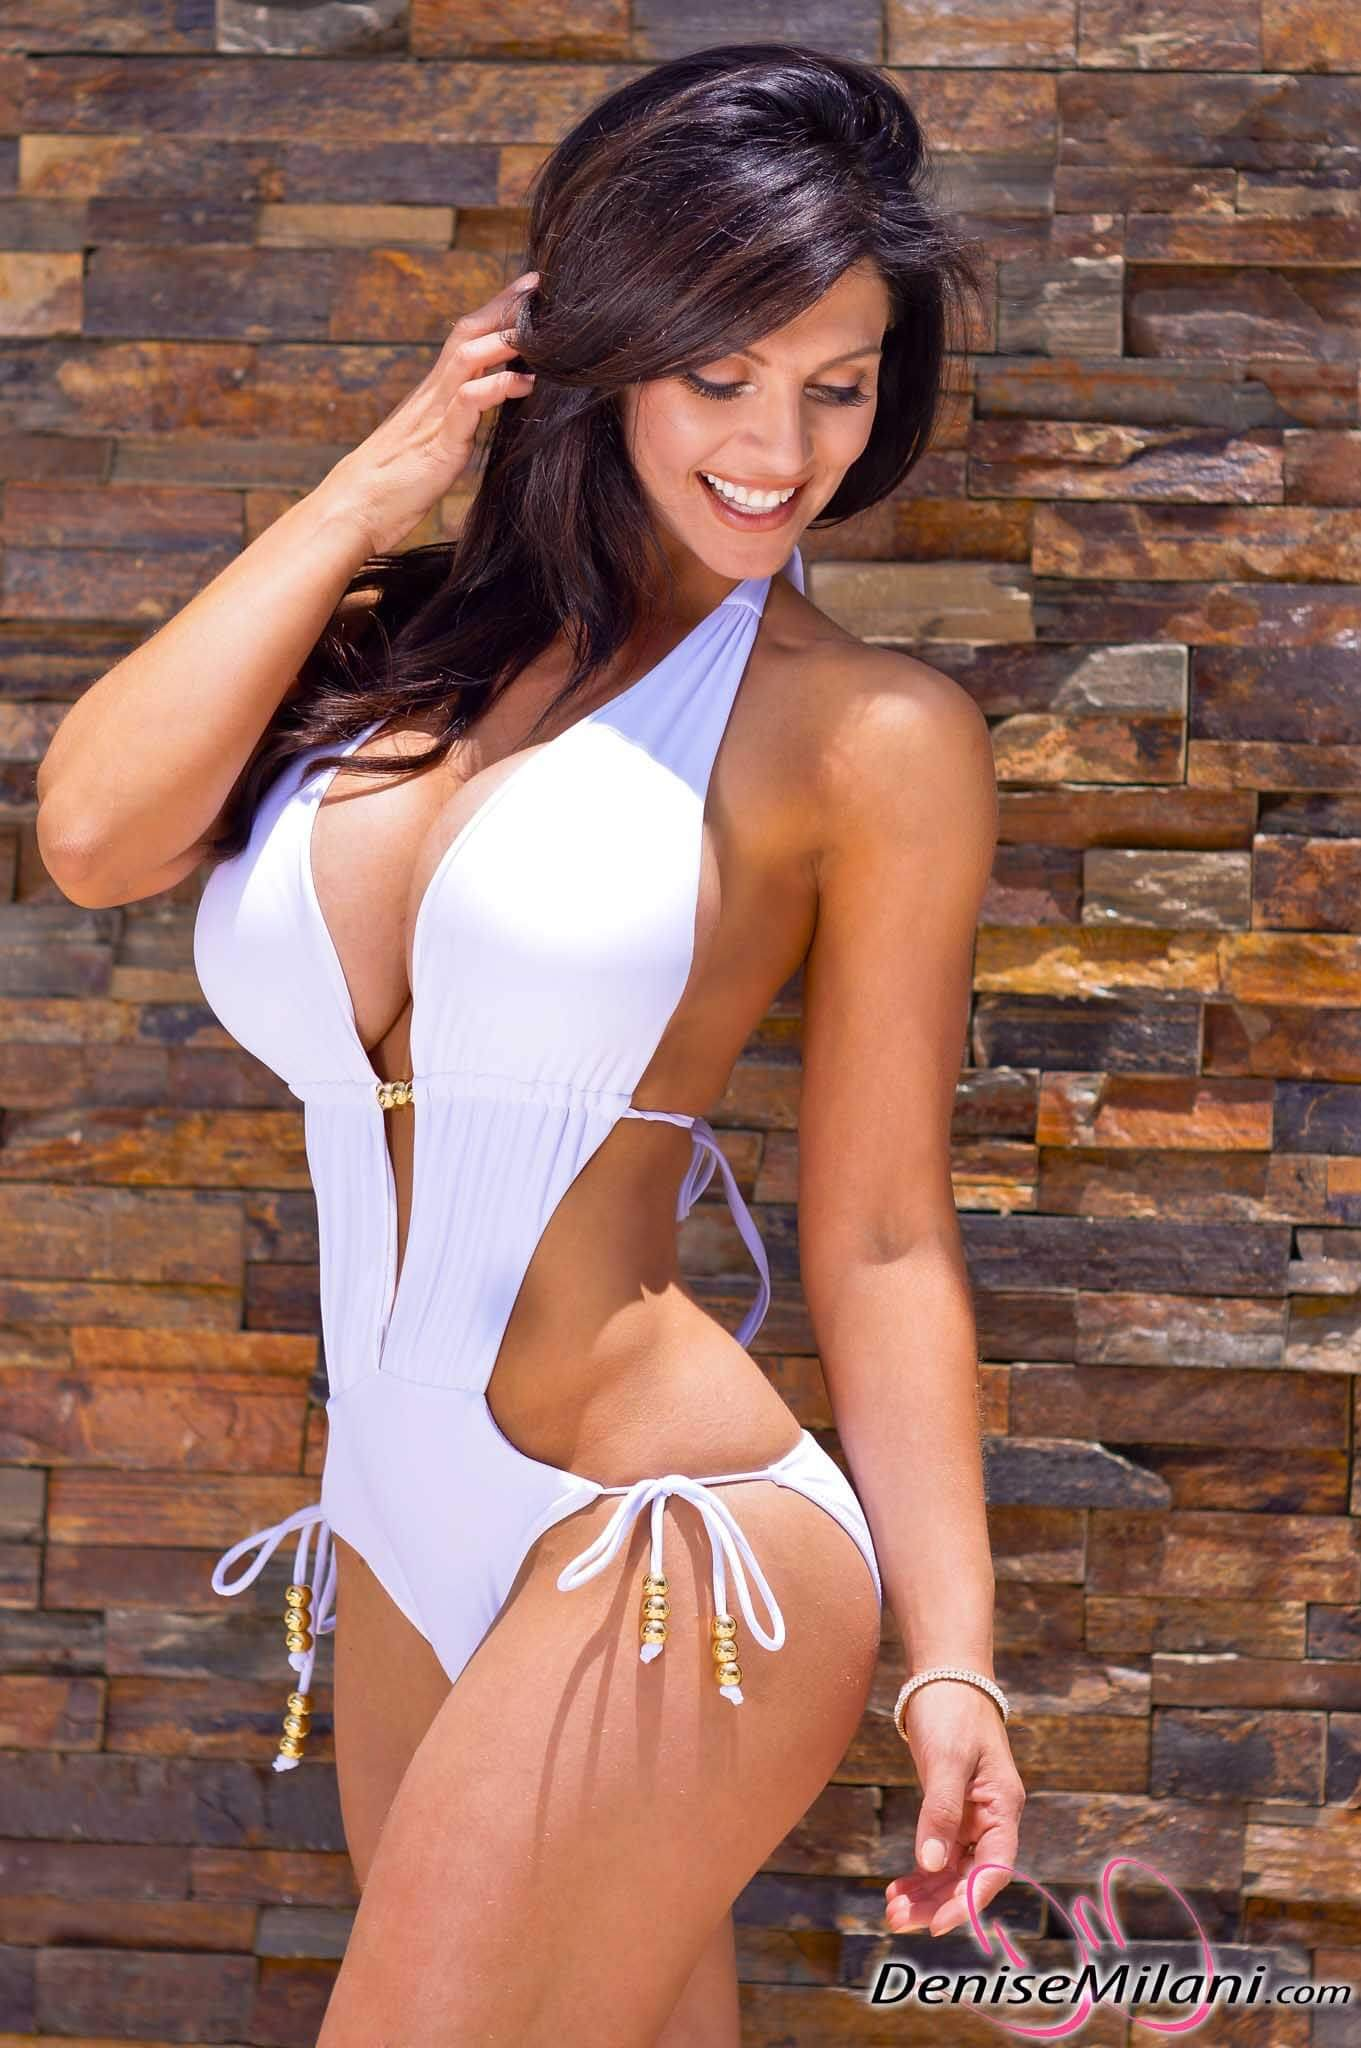 Denise Milani hot pic